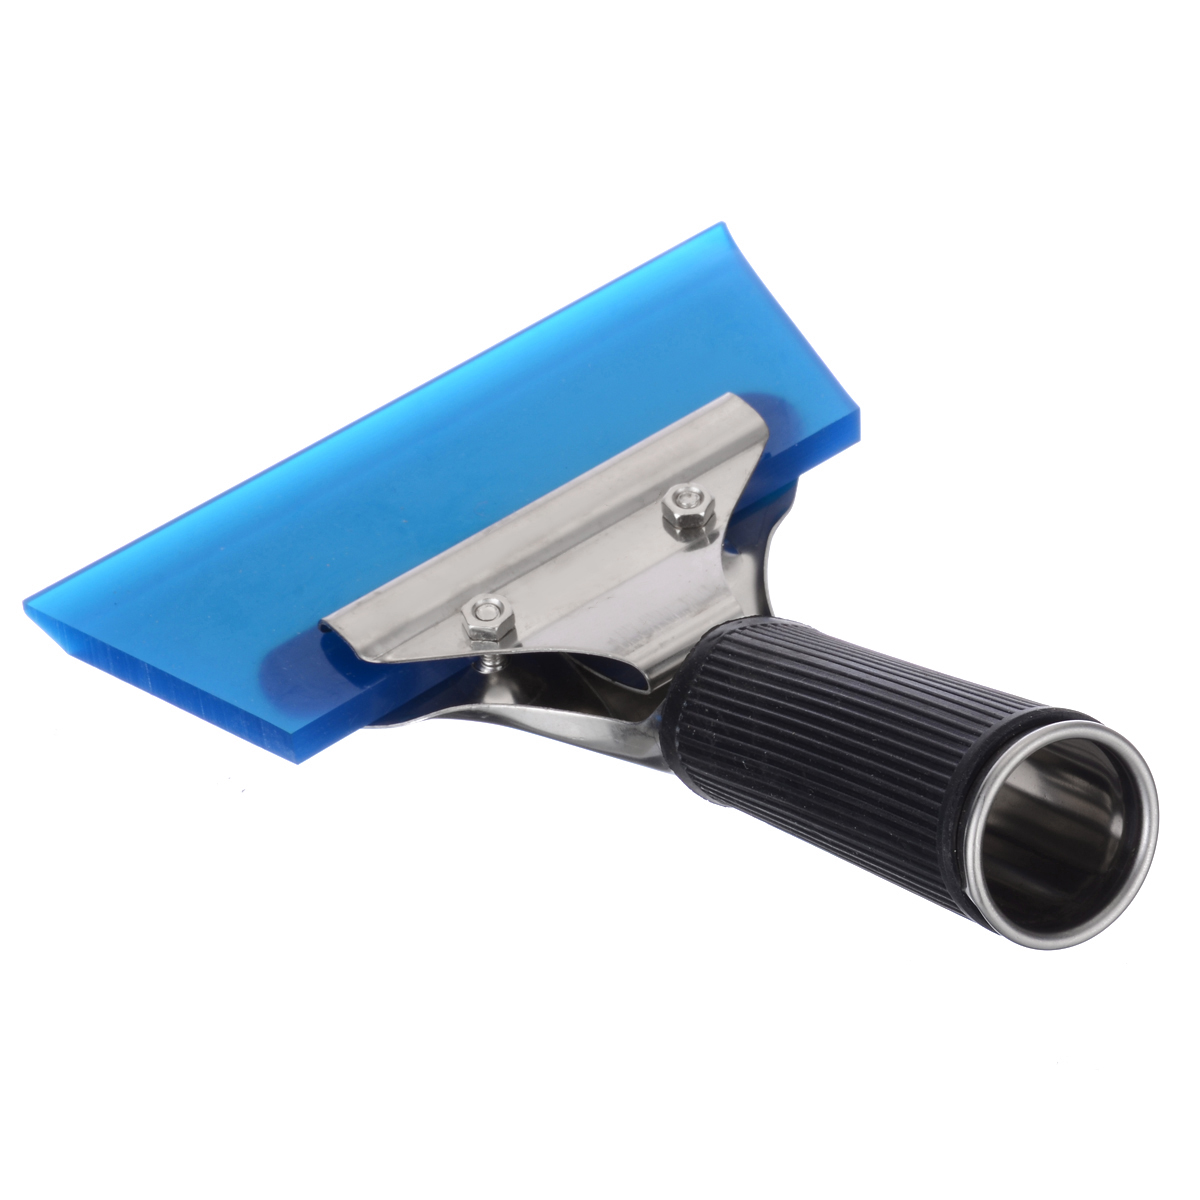 Car Tools Window Squeegee Water Wiper Handled Rubber Ice Scraper Blade Car Auto Snow Shovel Glass for Car Cleaning Tinting